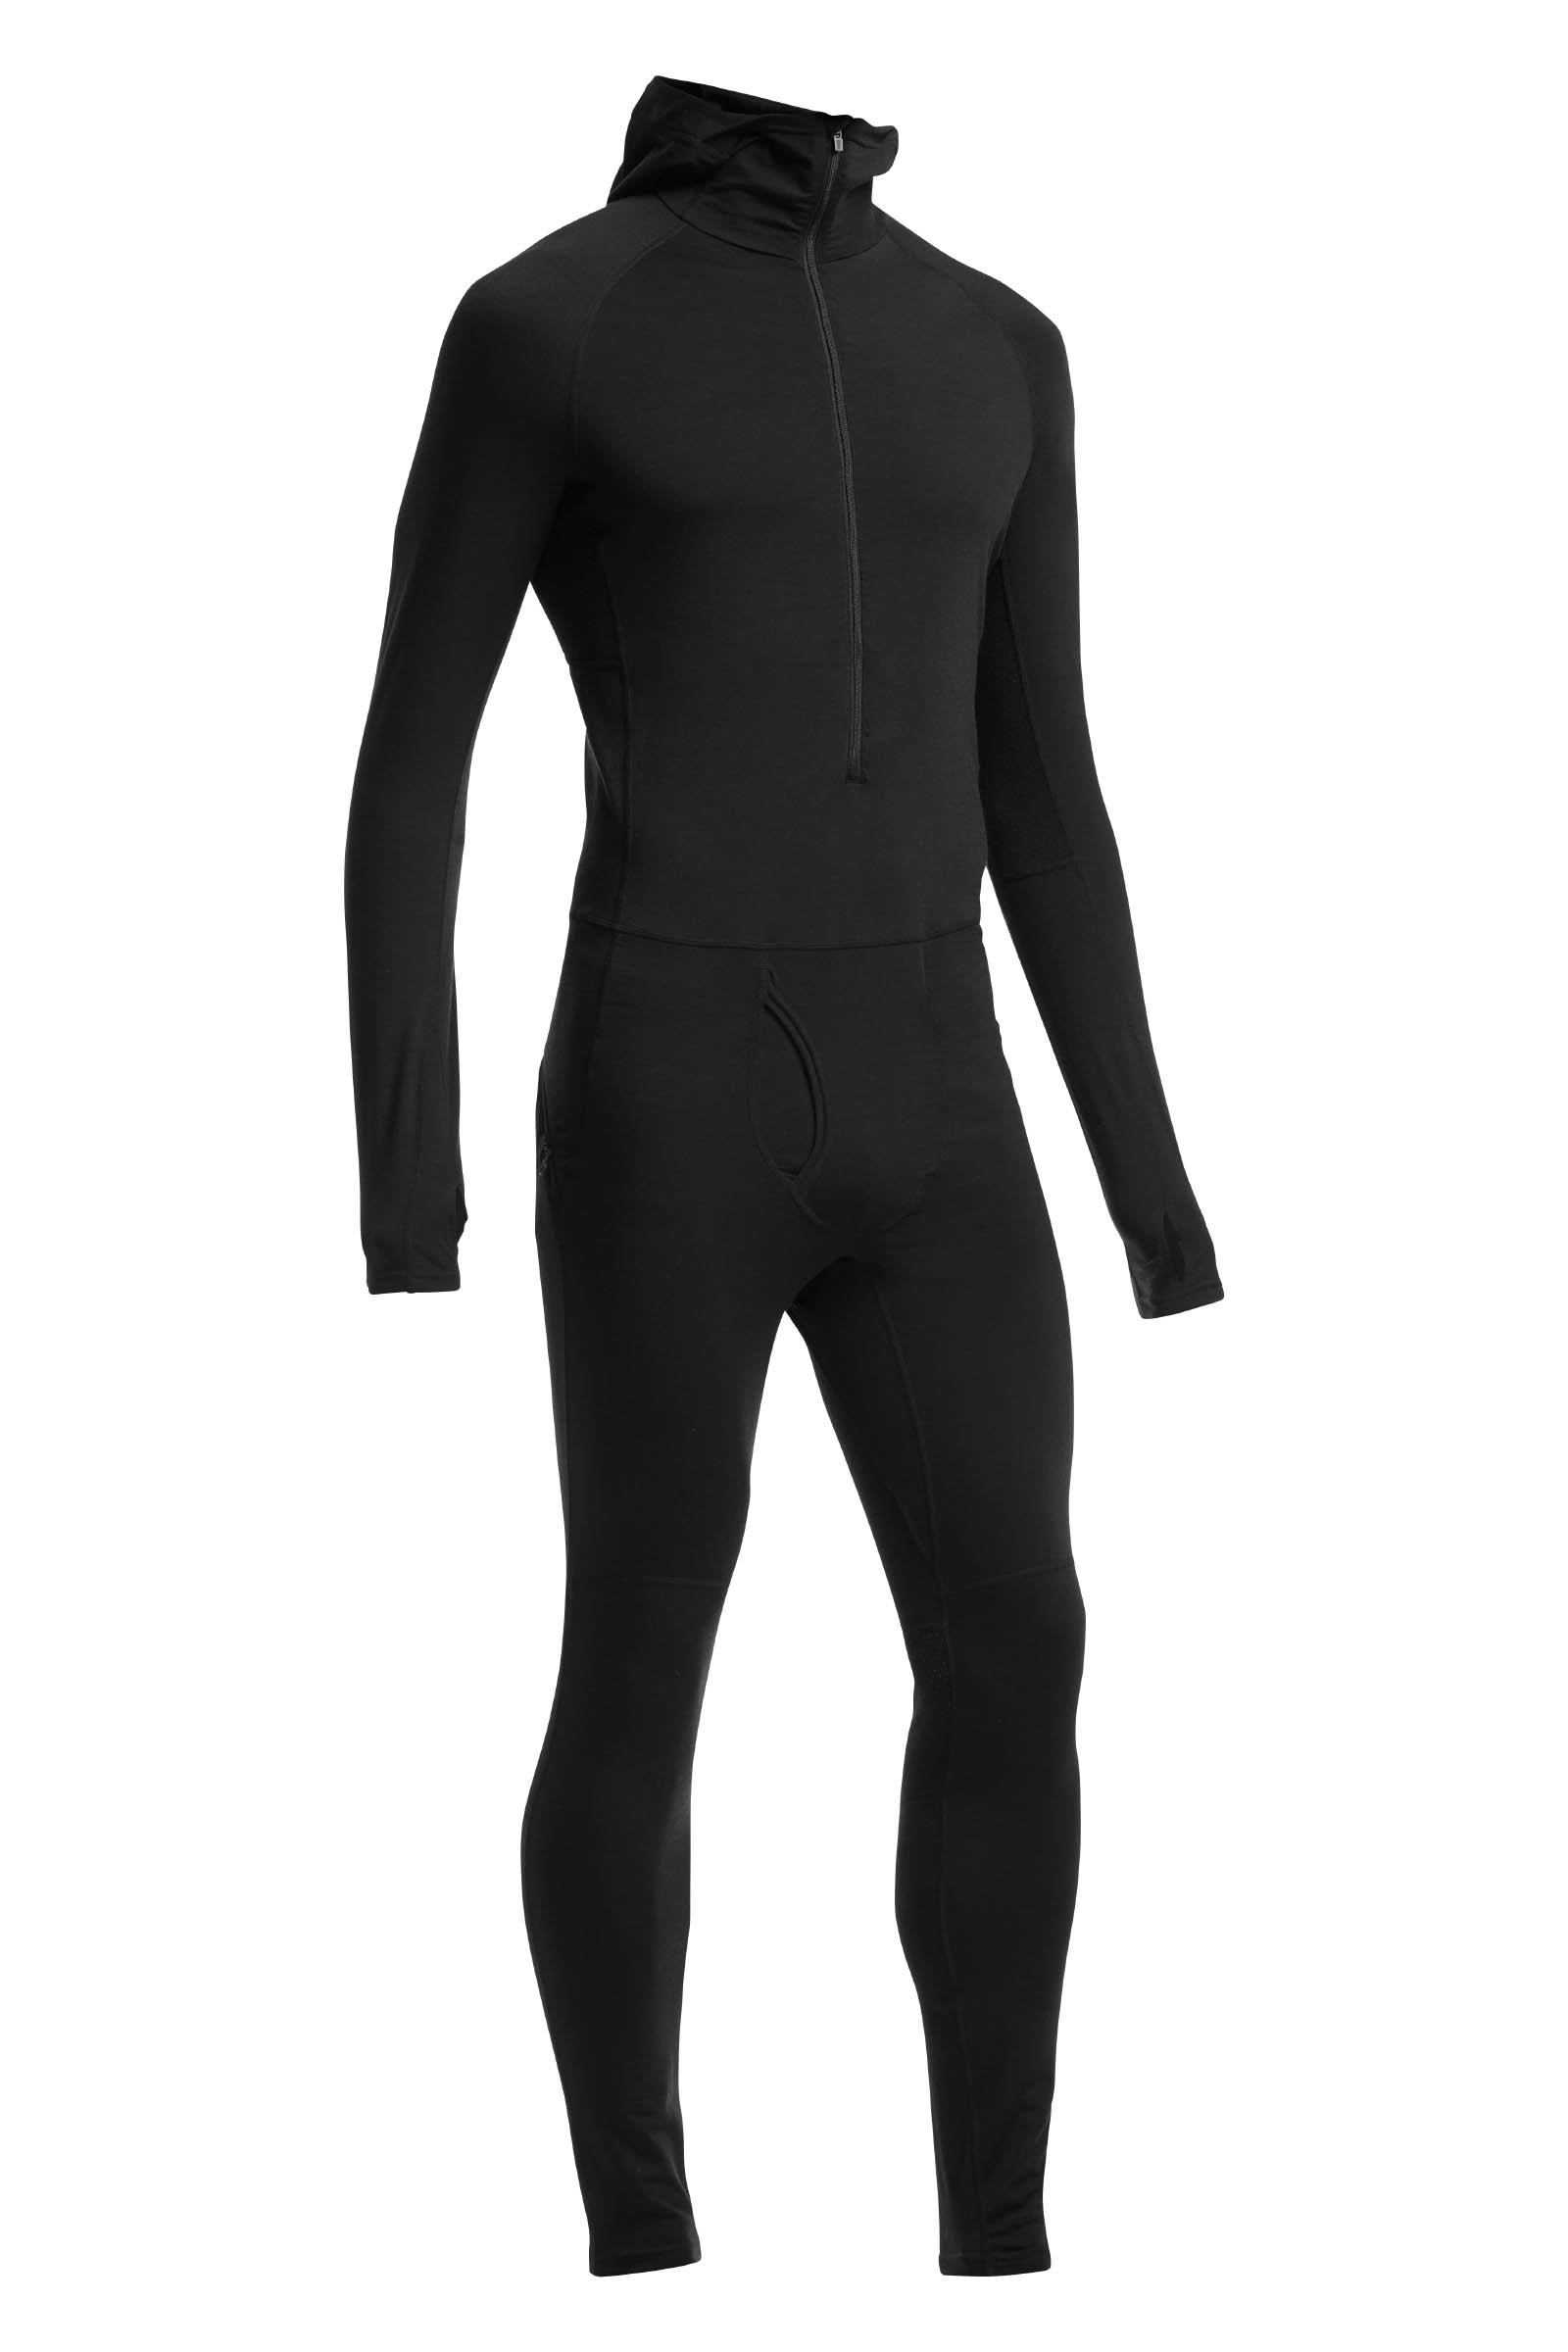 Icebreaker Merino Mens Zone One Sheep Suit, Black, Large